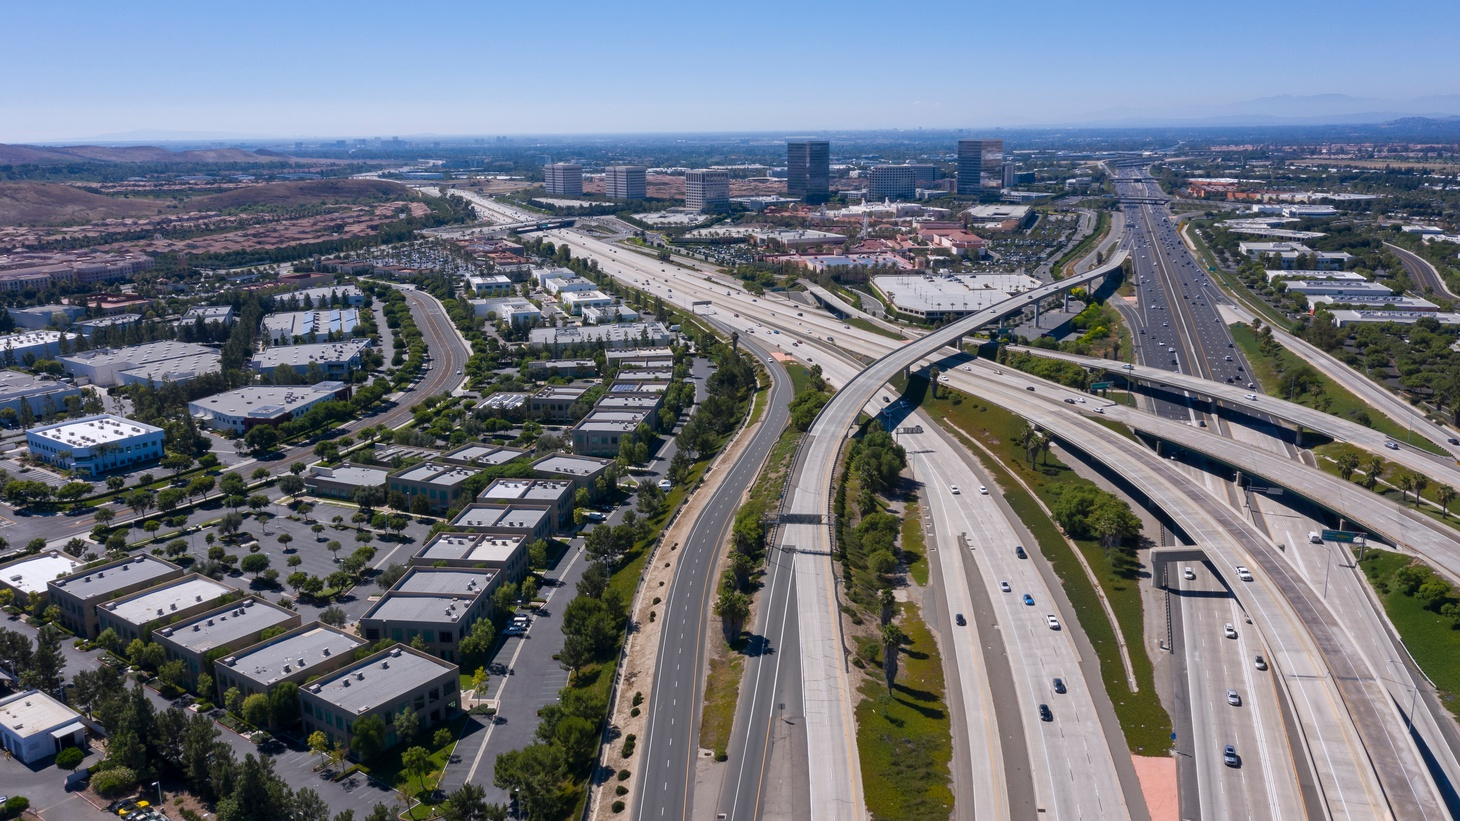 A daytime aerial view shows the 405 and 5 freeway interchange in Irvine, California. Orange County has a $200 million plan to build toll lanes on its section of the 405 freeway.